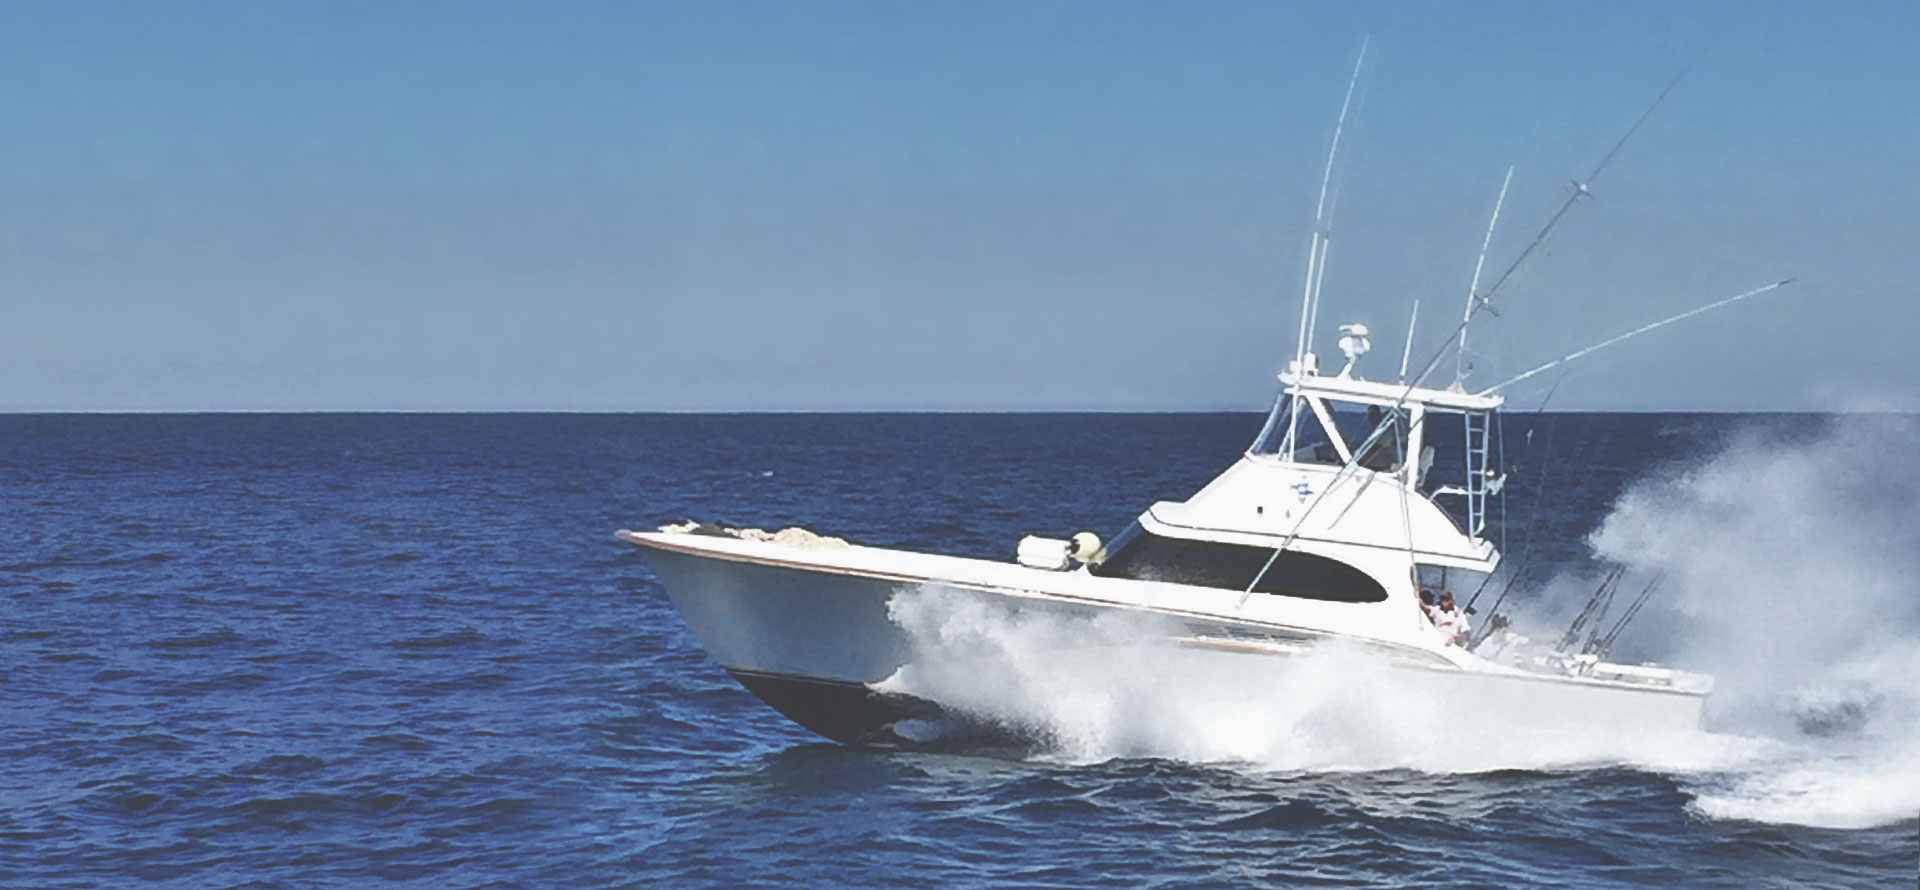 J hook luxury fishing chartersavailable fishing charters for Sport fishing charters